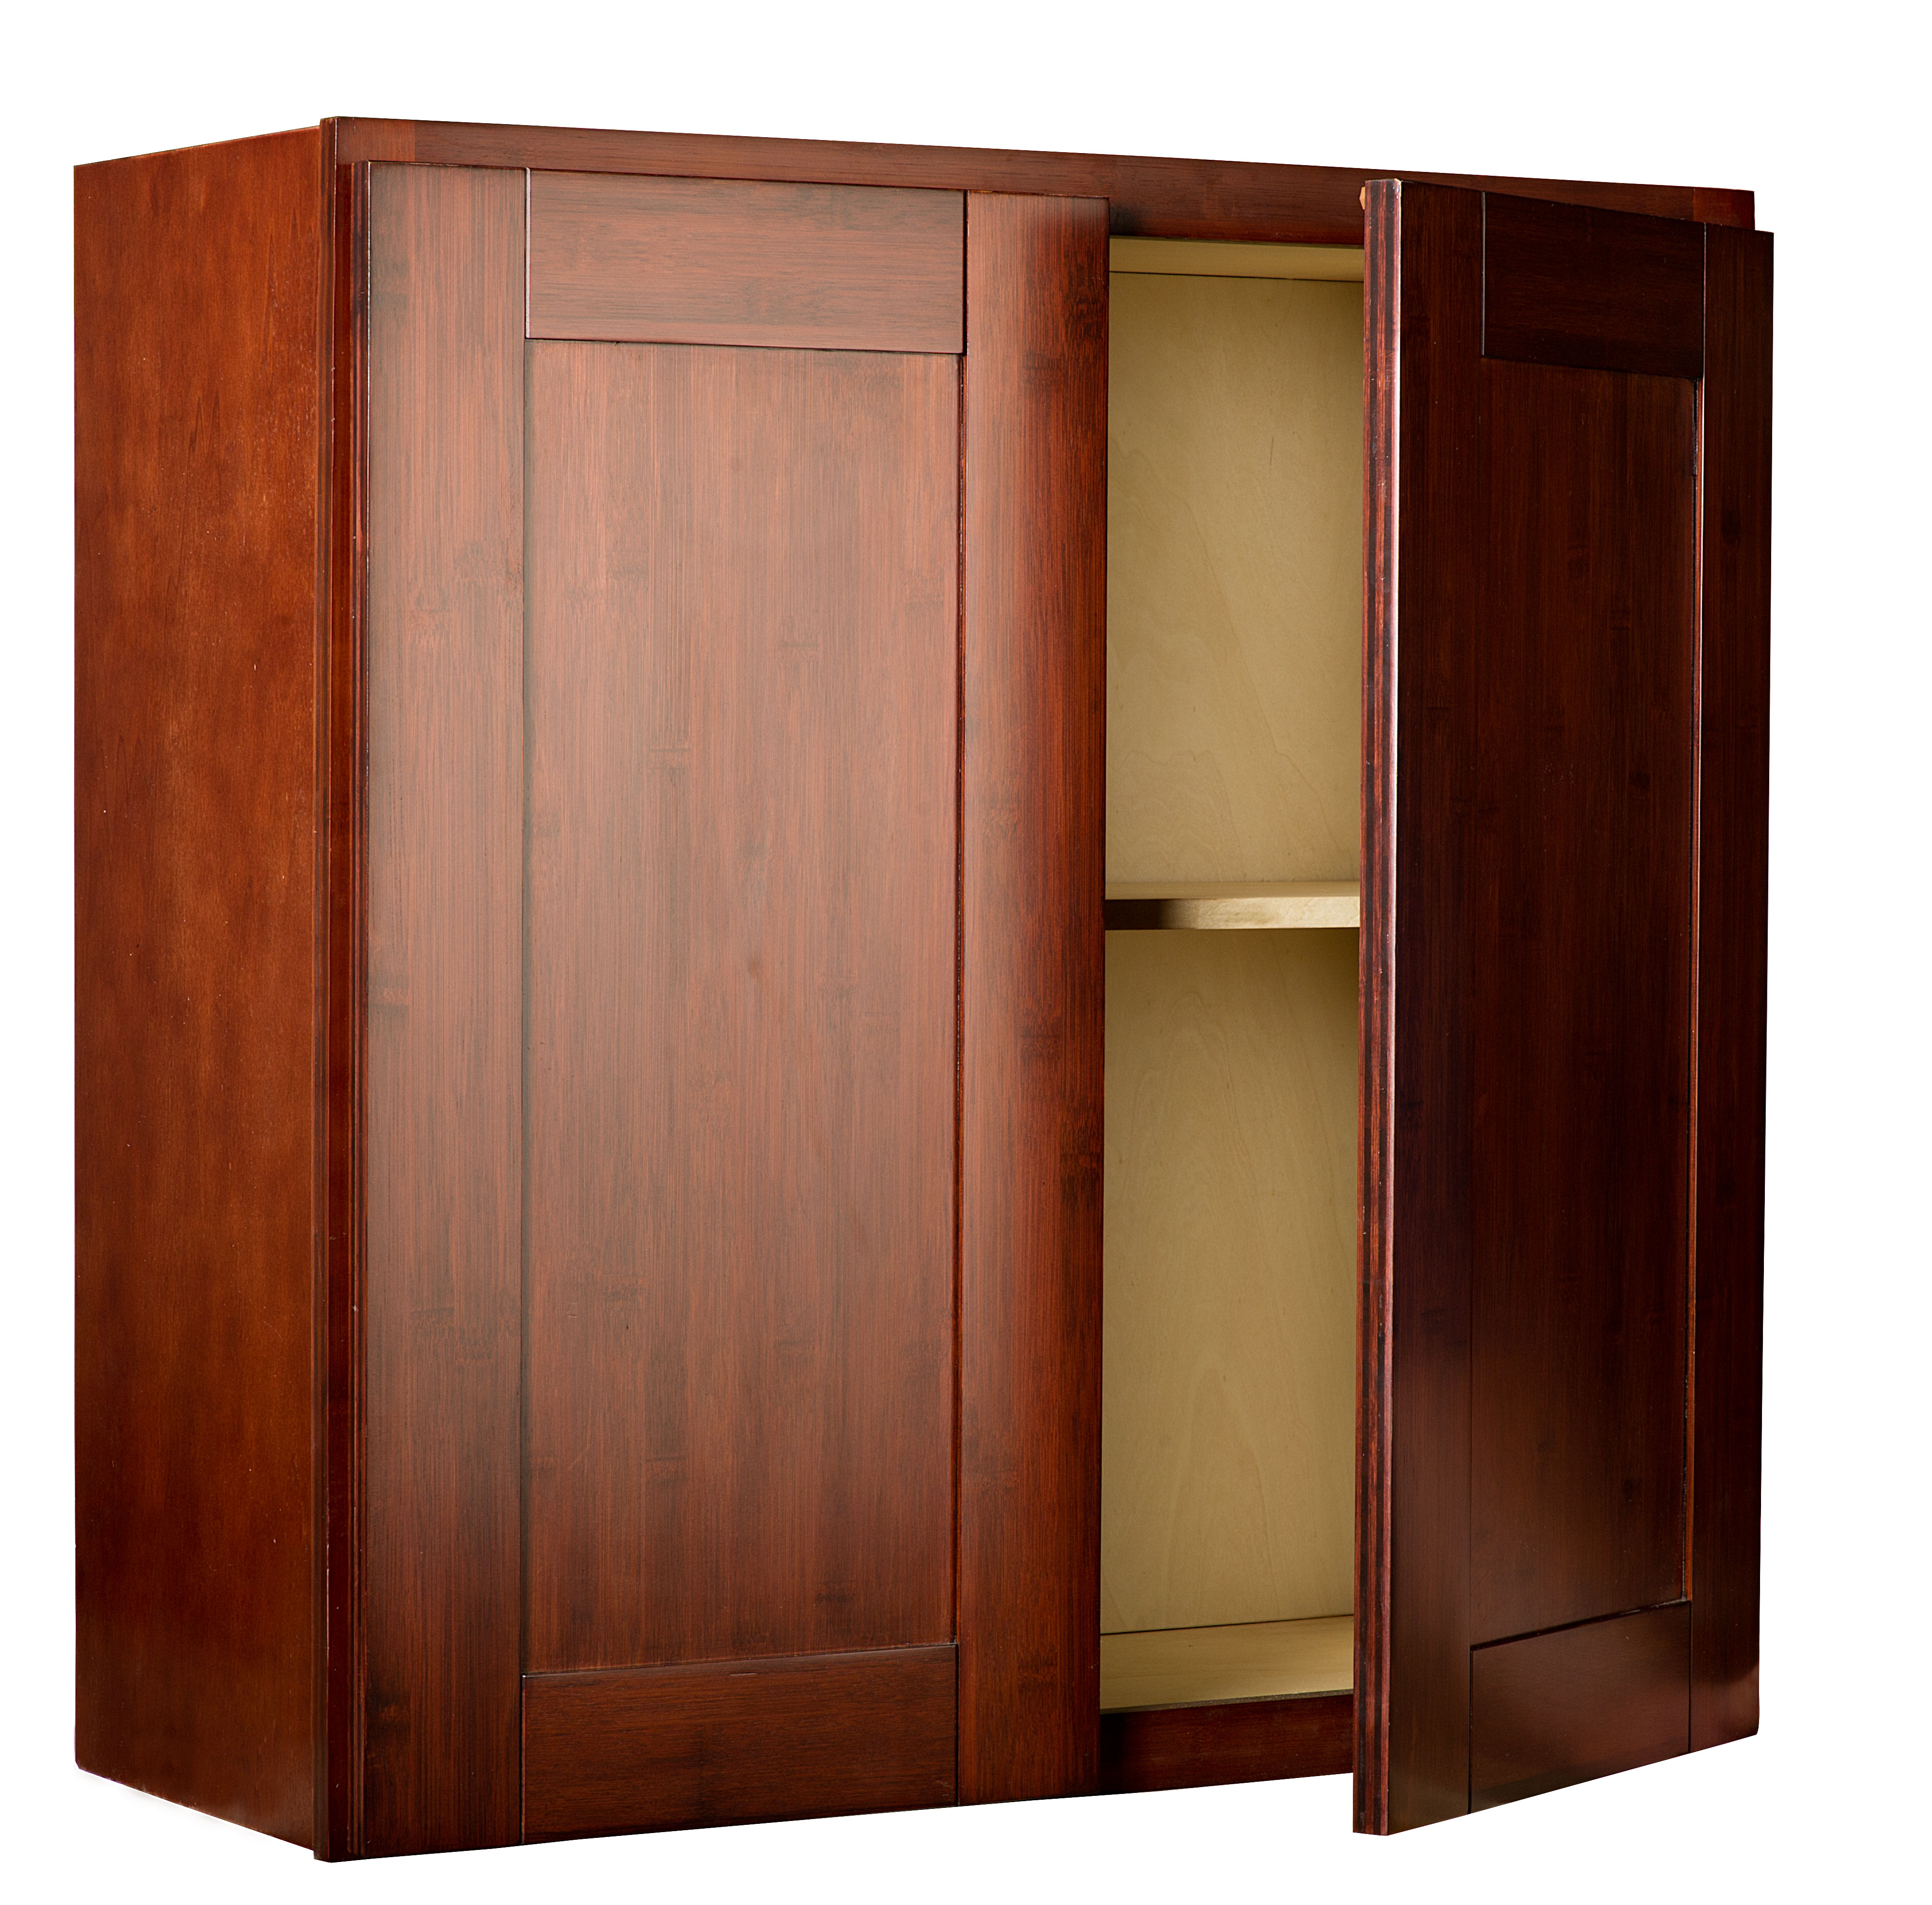 Kitchen Cupboard Doors Online The Beauty Of Bamboo Rta Cabinets Rta Kitchen Cabinets